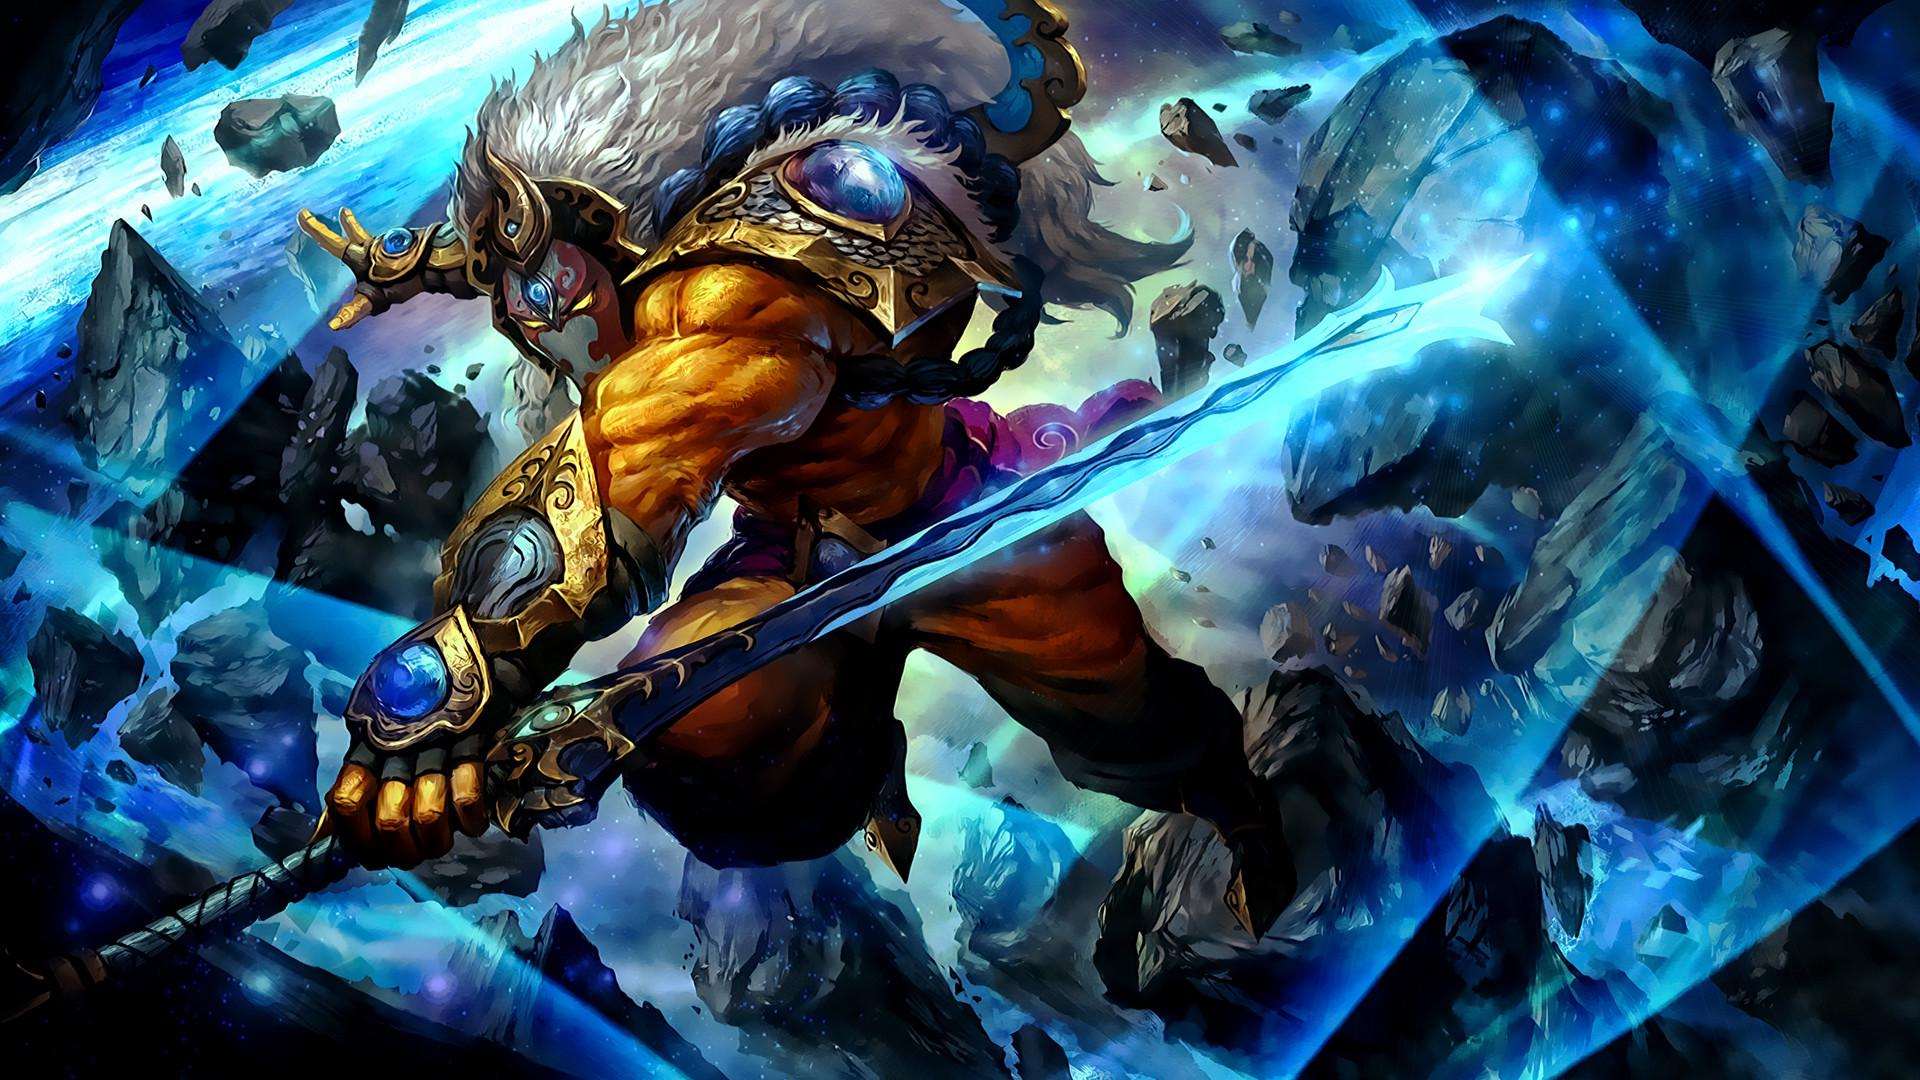 90 Amazing Dota 2 Wallpapers For Your Pc Dmarket Blog